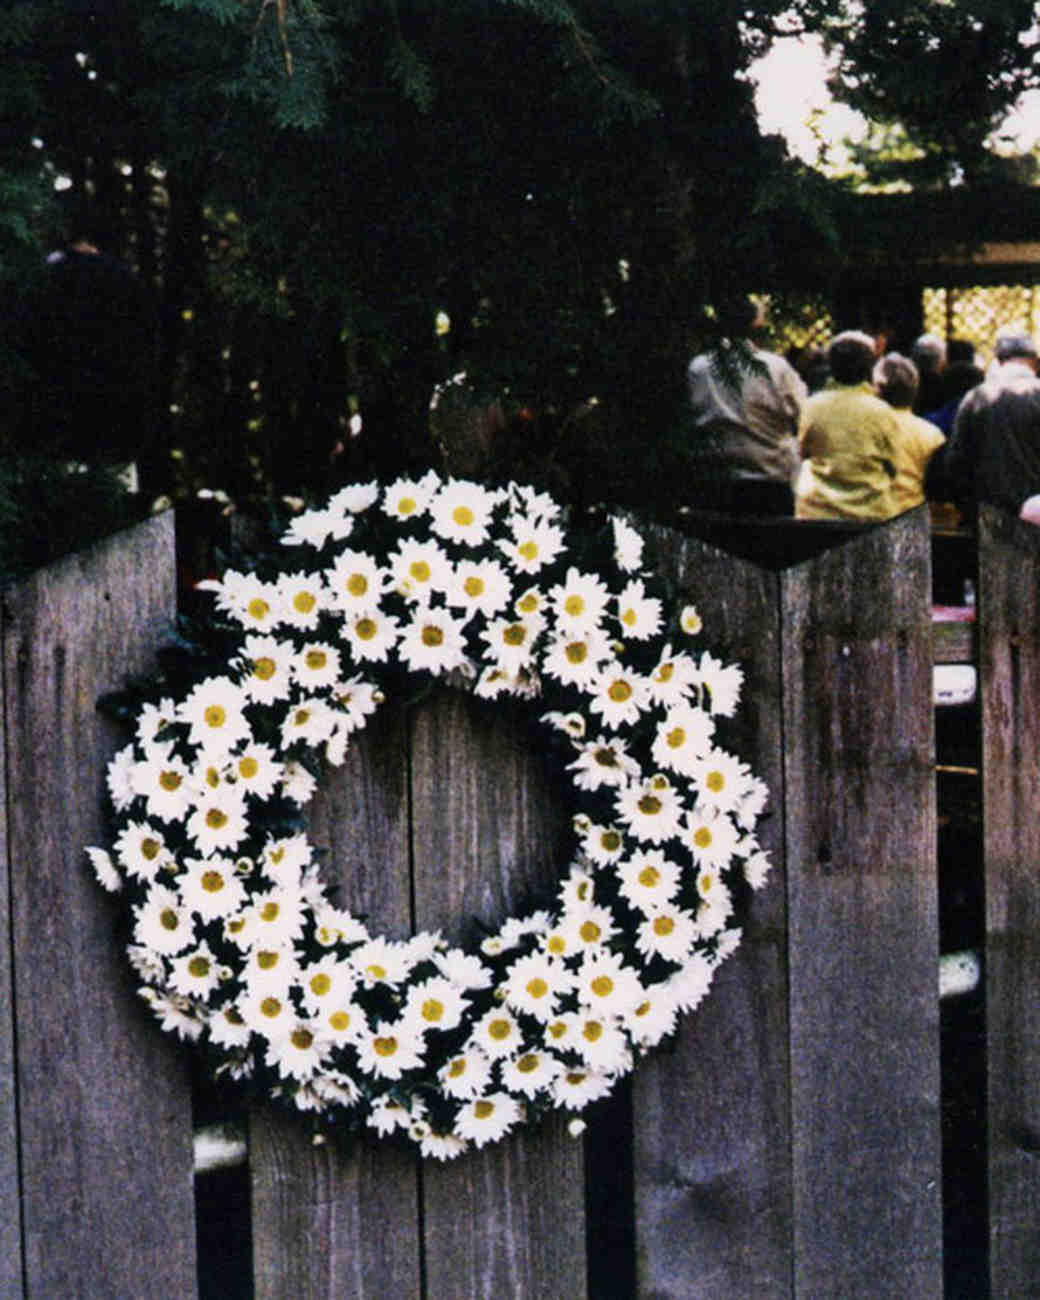 msw_travel09_wreath_tereasa_david.jpg